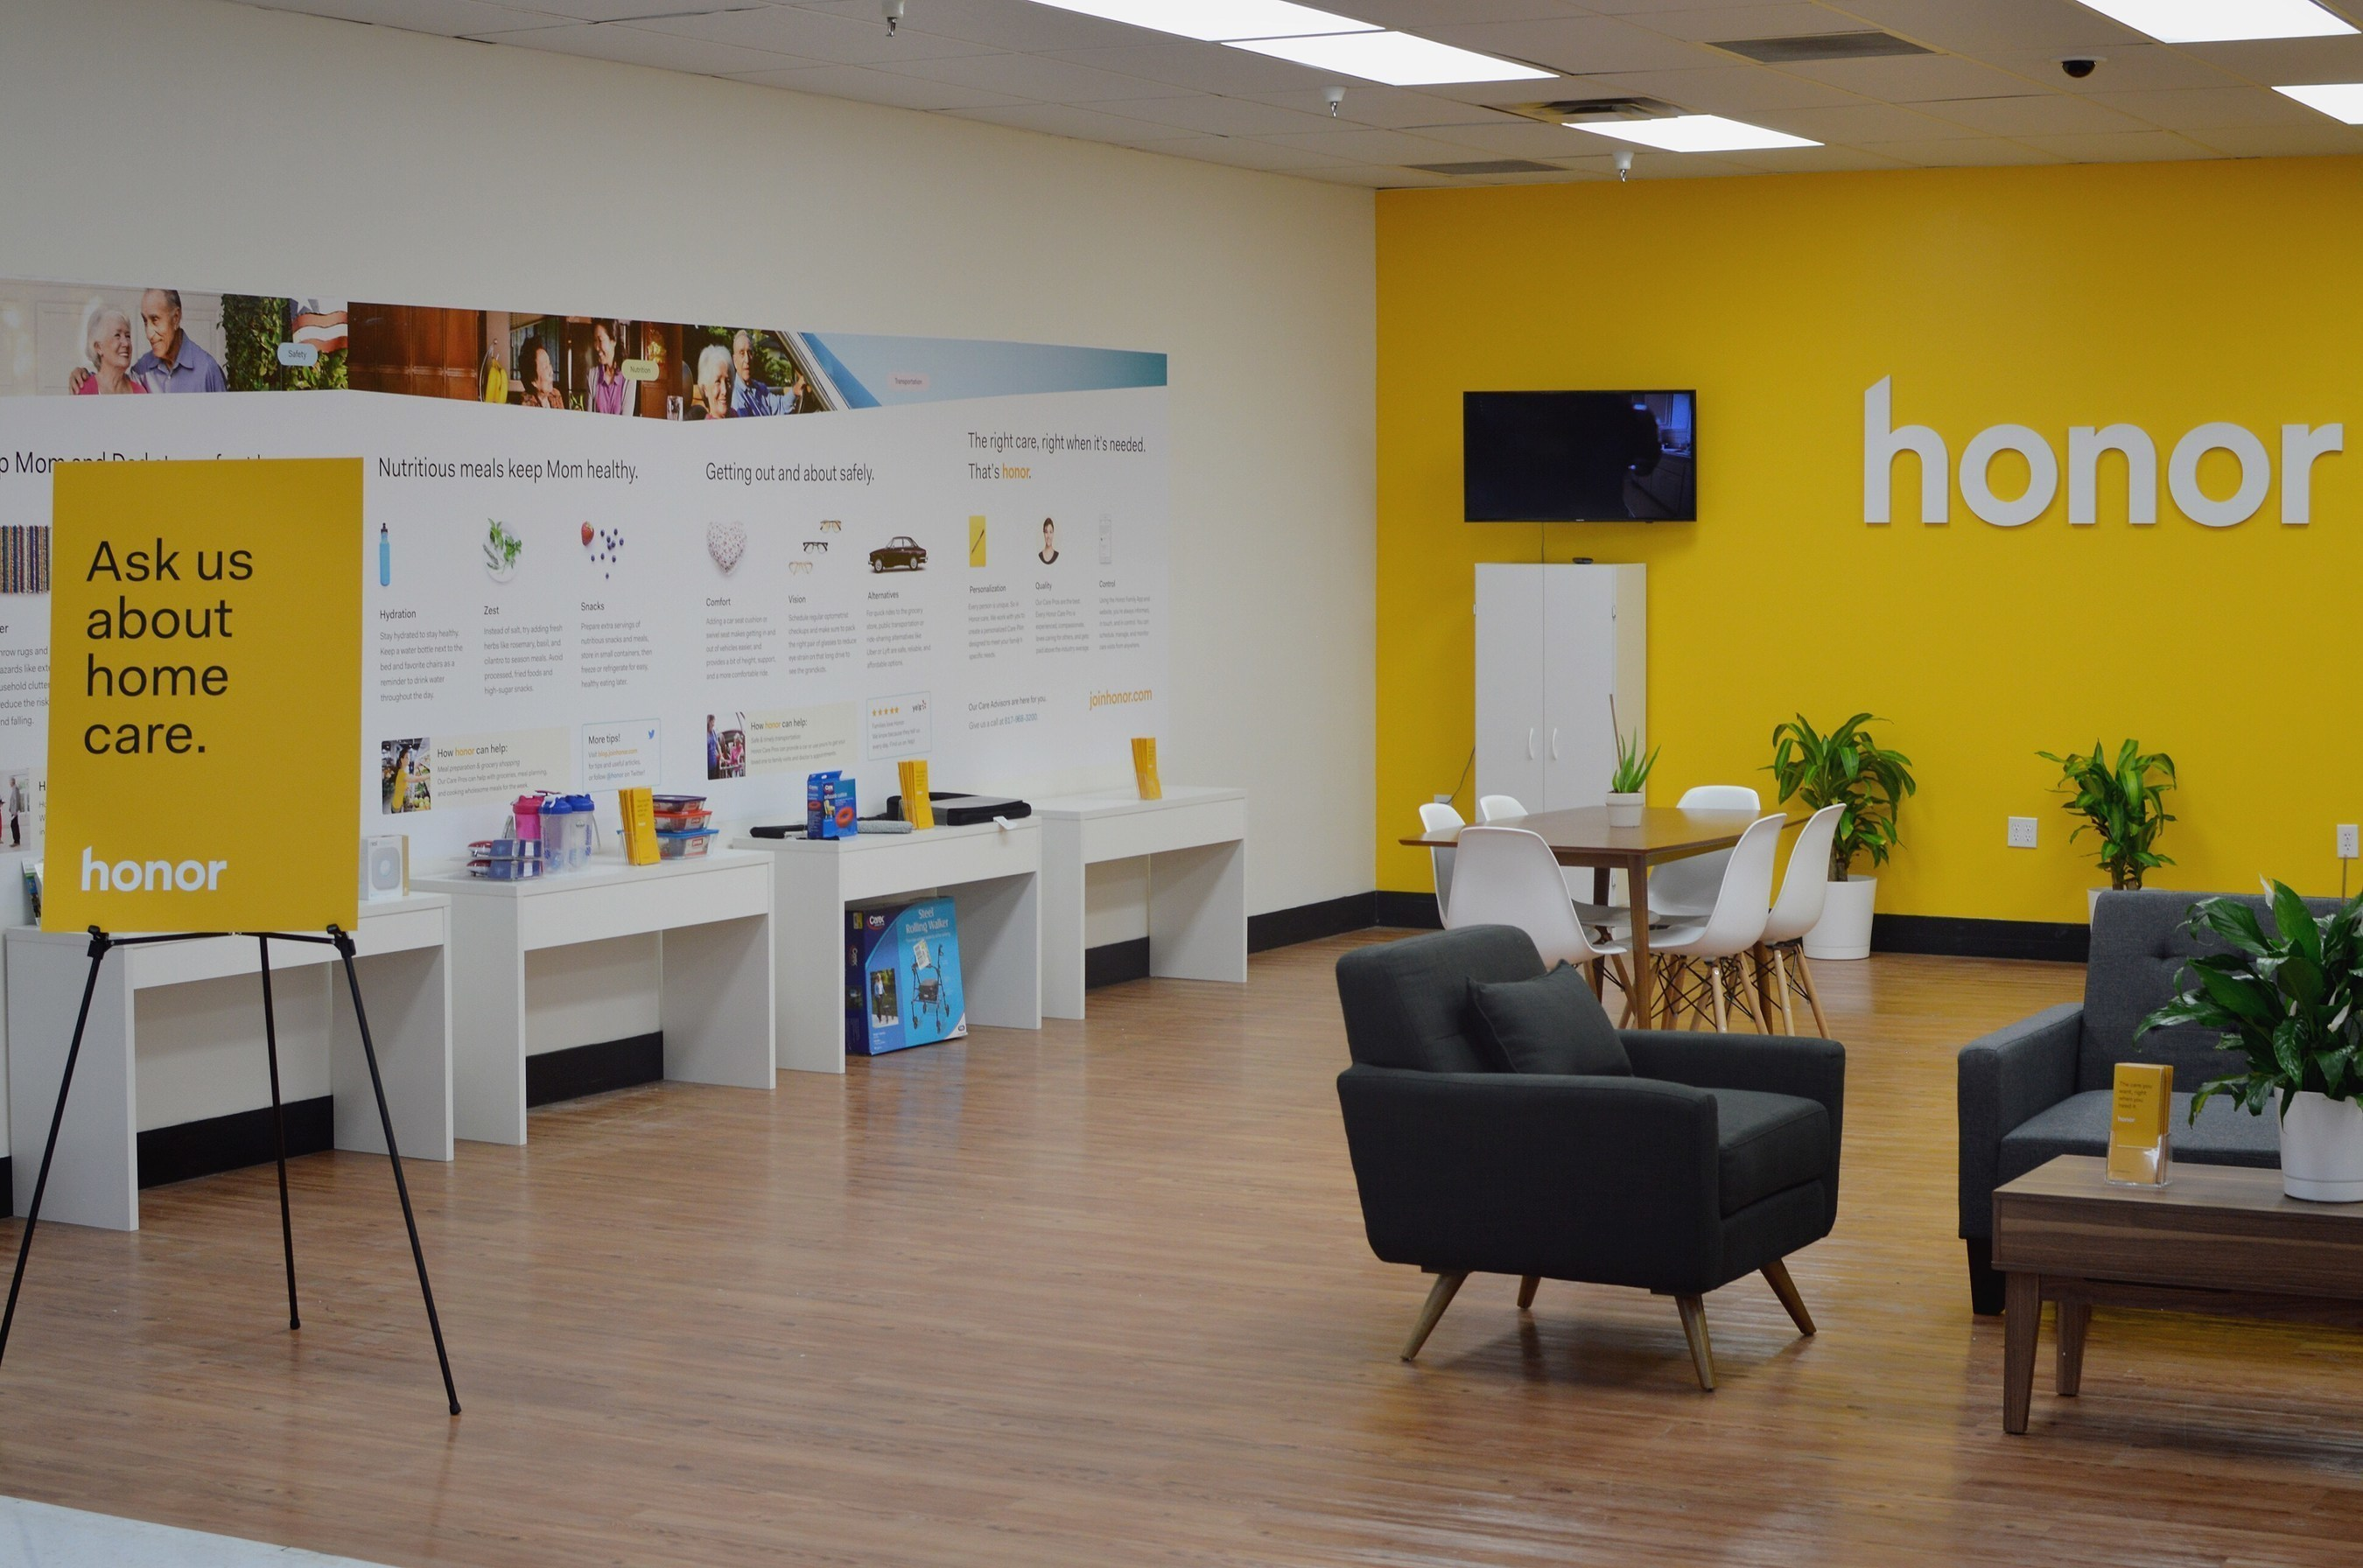 Honor™ Launches In Two Dallas Fort Worth Walmart Stores